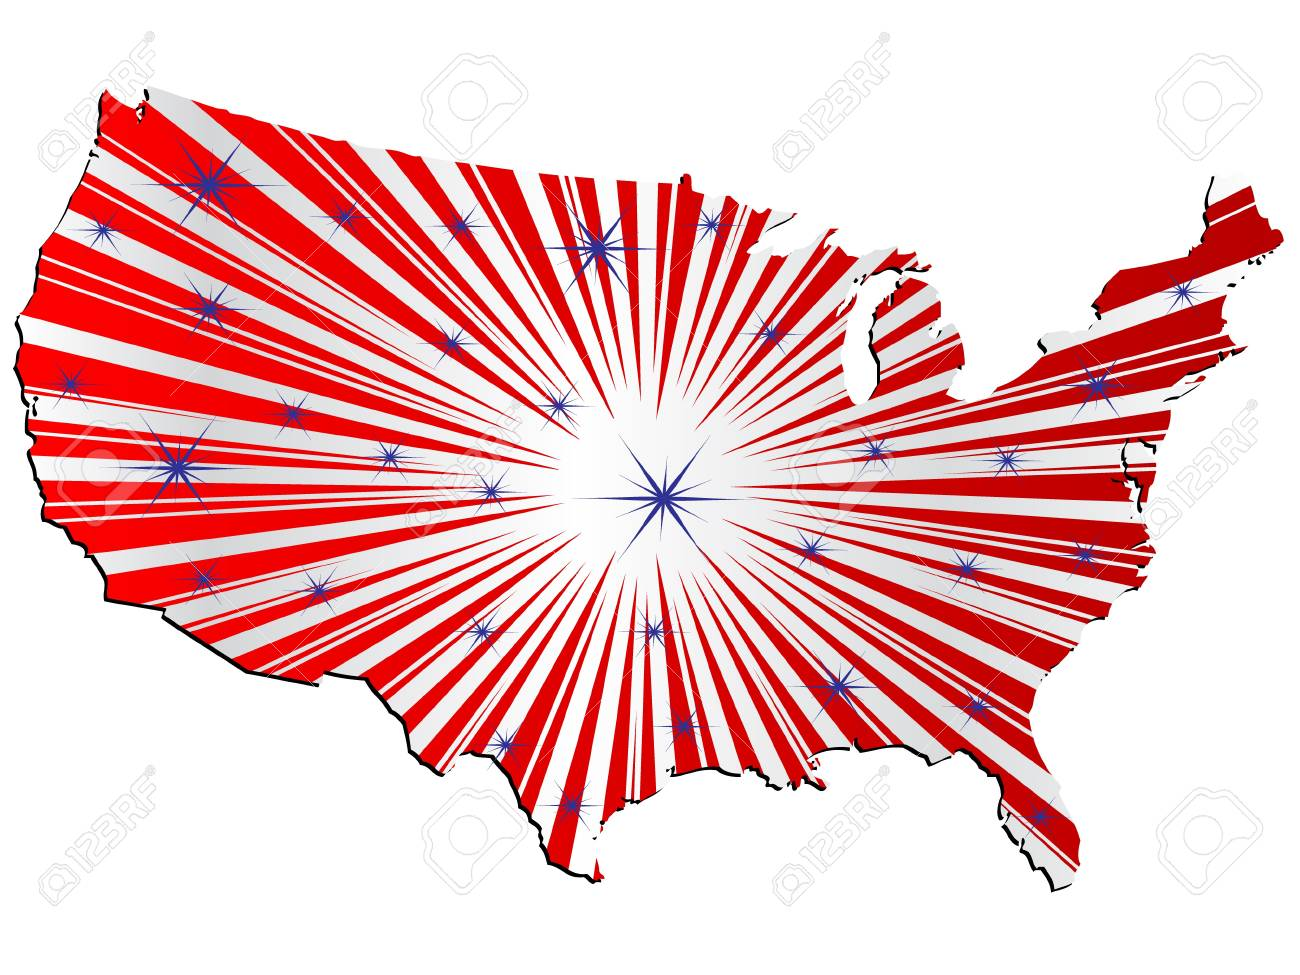 American Map Vector.American Map Vector Illustration Royalty Free Cliparts Vectors And